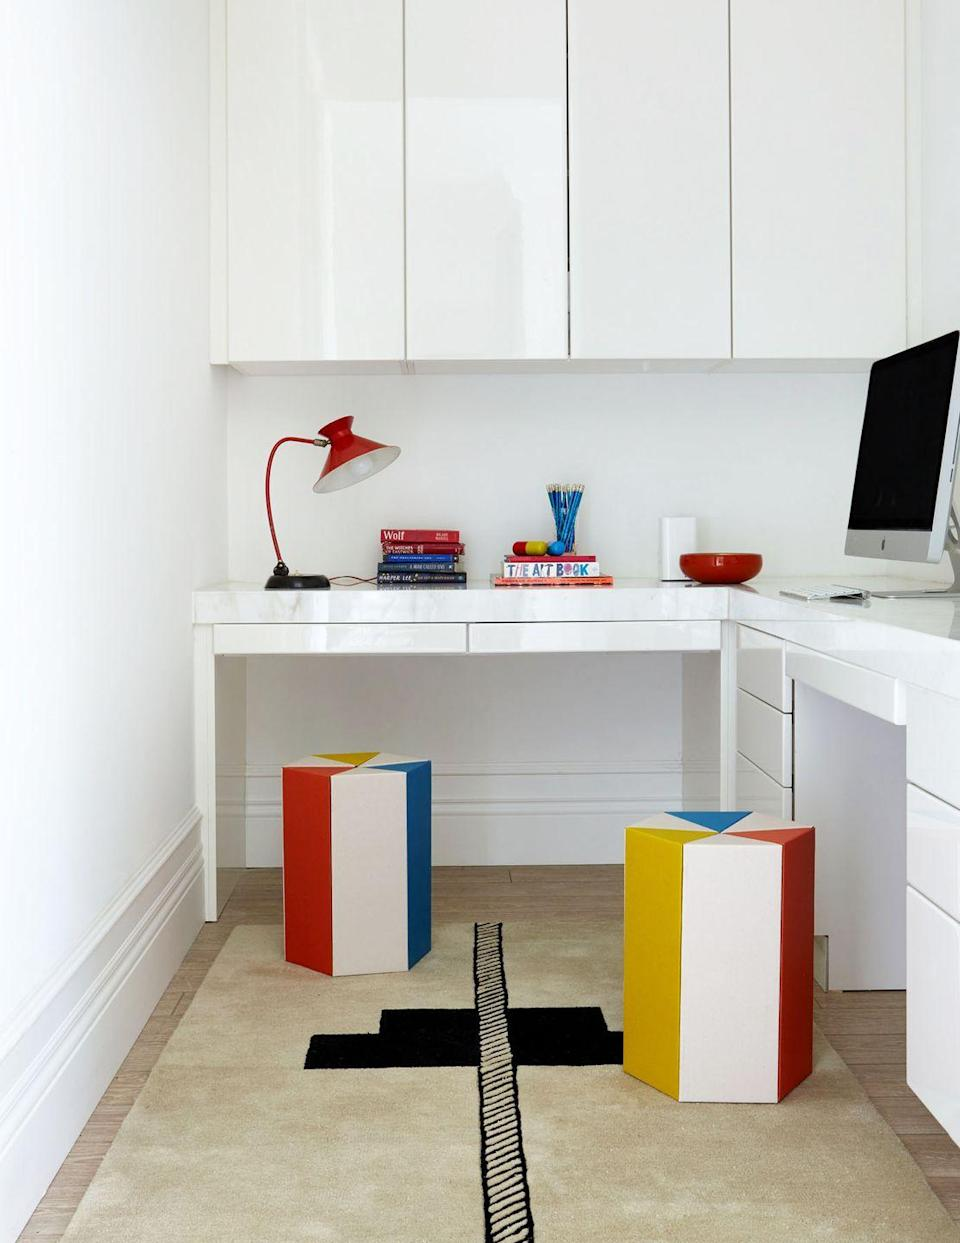 """<p>If you have a small makeshift home office in the corner of a larger room or you're converting a walk-in closet, opt for glossy white lacquered cabinets and furniture. Similar to the maximizing effect of a mirror, the reflective surfaces will give the illusion of a larger, more open space. Designer <a href=""""http://www.rajirm.com/"""" rel=""""nofollow noopener"""" target=""""_blank"""" data-ylk=""""slk:Raji Radhakrishnan"""" class=""""link rapid-noclick-resp"""">Raji Radhakrishnan</a> gave <a href=""""https://www.housebeautiful.com/design-inspiration/house-tours/a30696950/raji-rm-piet-boon-virginia/"""" rel=""""nofollow noopener"""" target=""""_blank"""" data-ylk=""""slk:this"""" class=""""link rapid-noclick-resp"""">this</a> home office some pops of fun and vibrancy with primary colored stools and a graphic rug. </p>"""